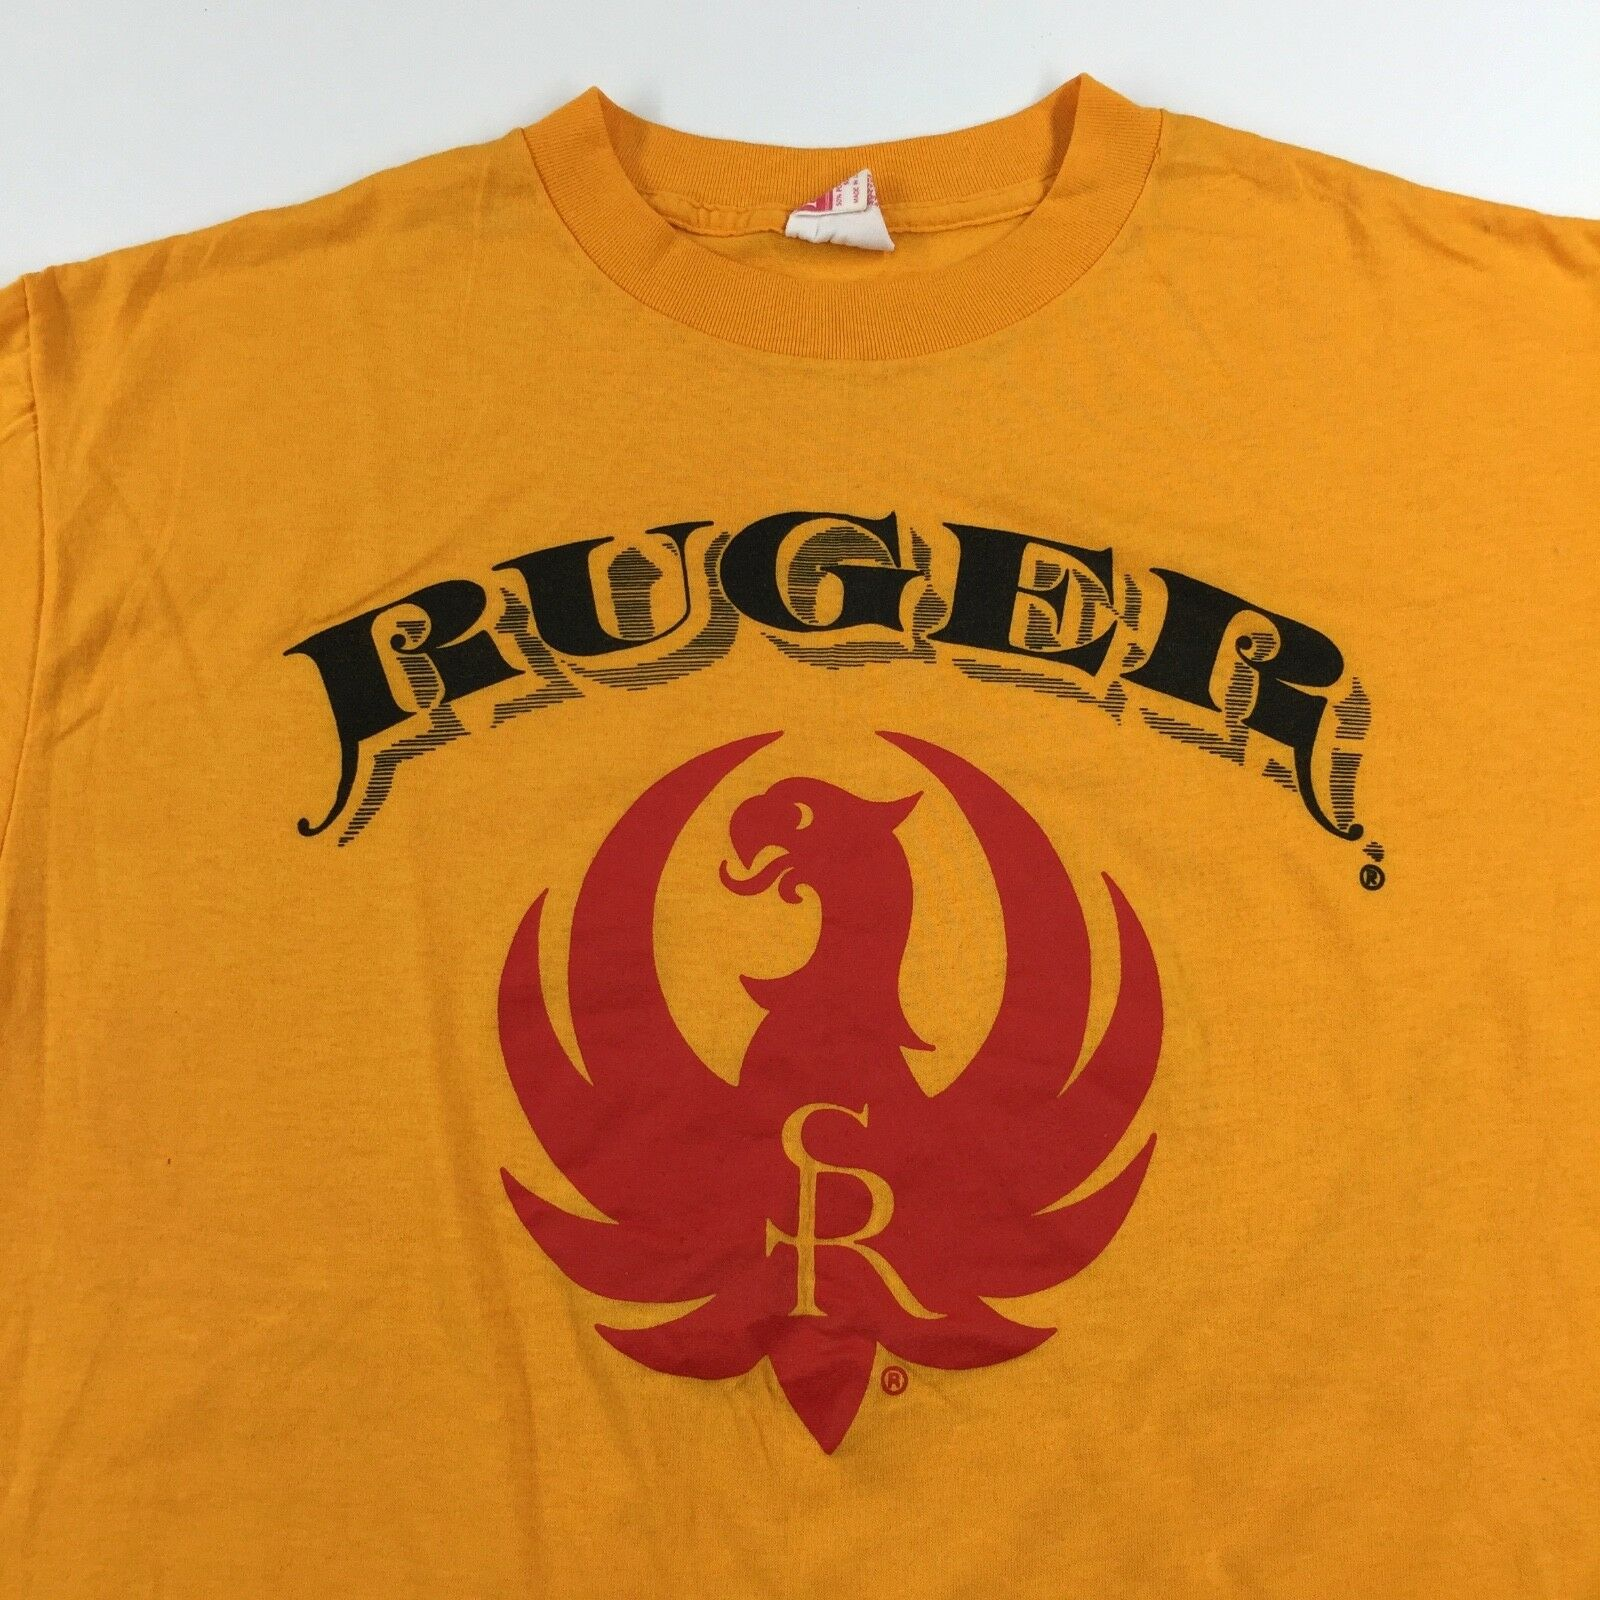 Vintage 80's Strum Ruger Firearms T-Shirt Größe M / L Weapon Guns EXC. 50/50 SOFT